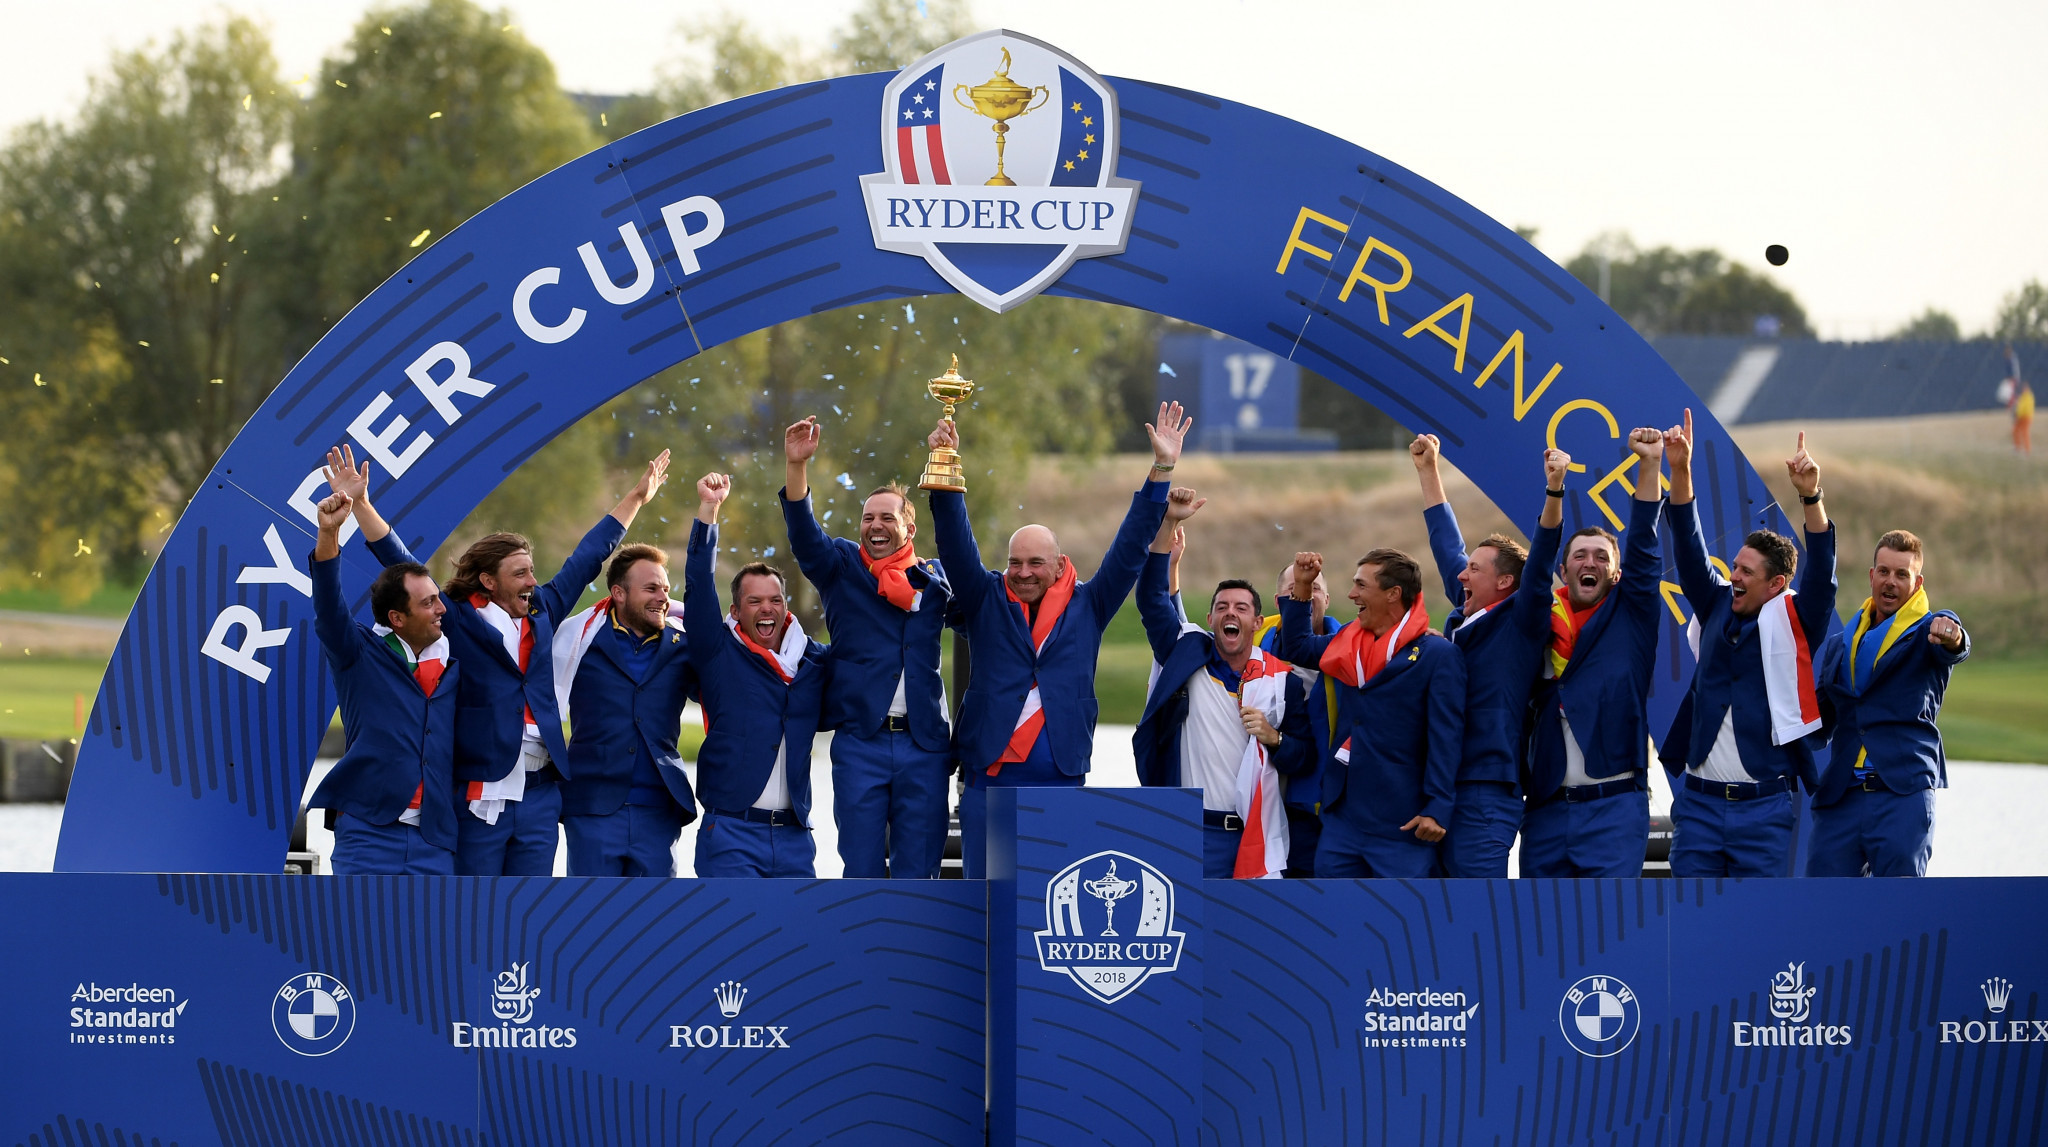 Postponement of Ryder Cup to 2021 tipped to be announced next week